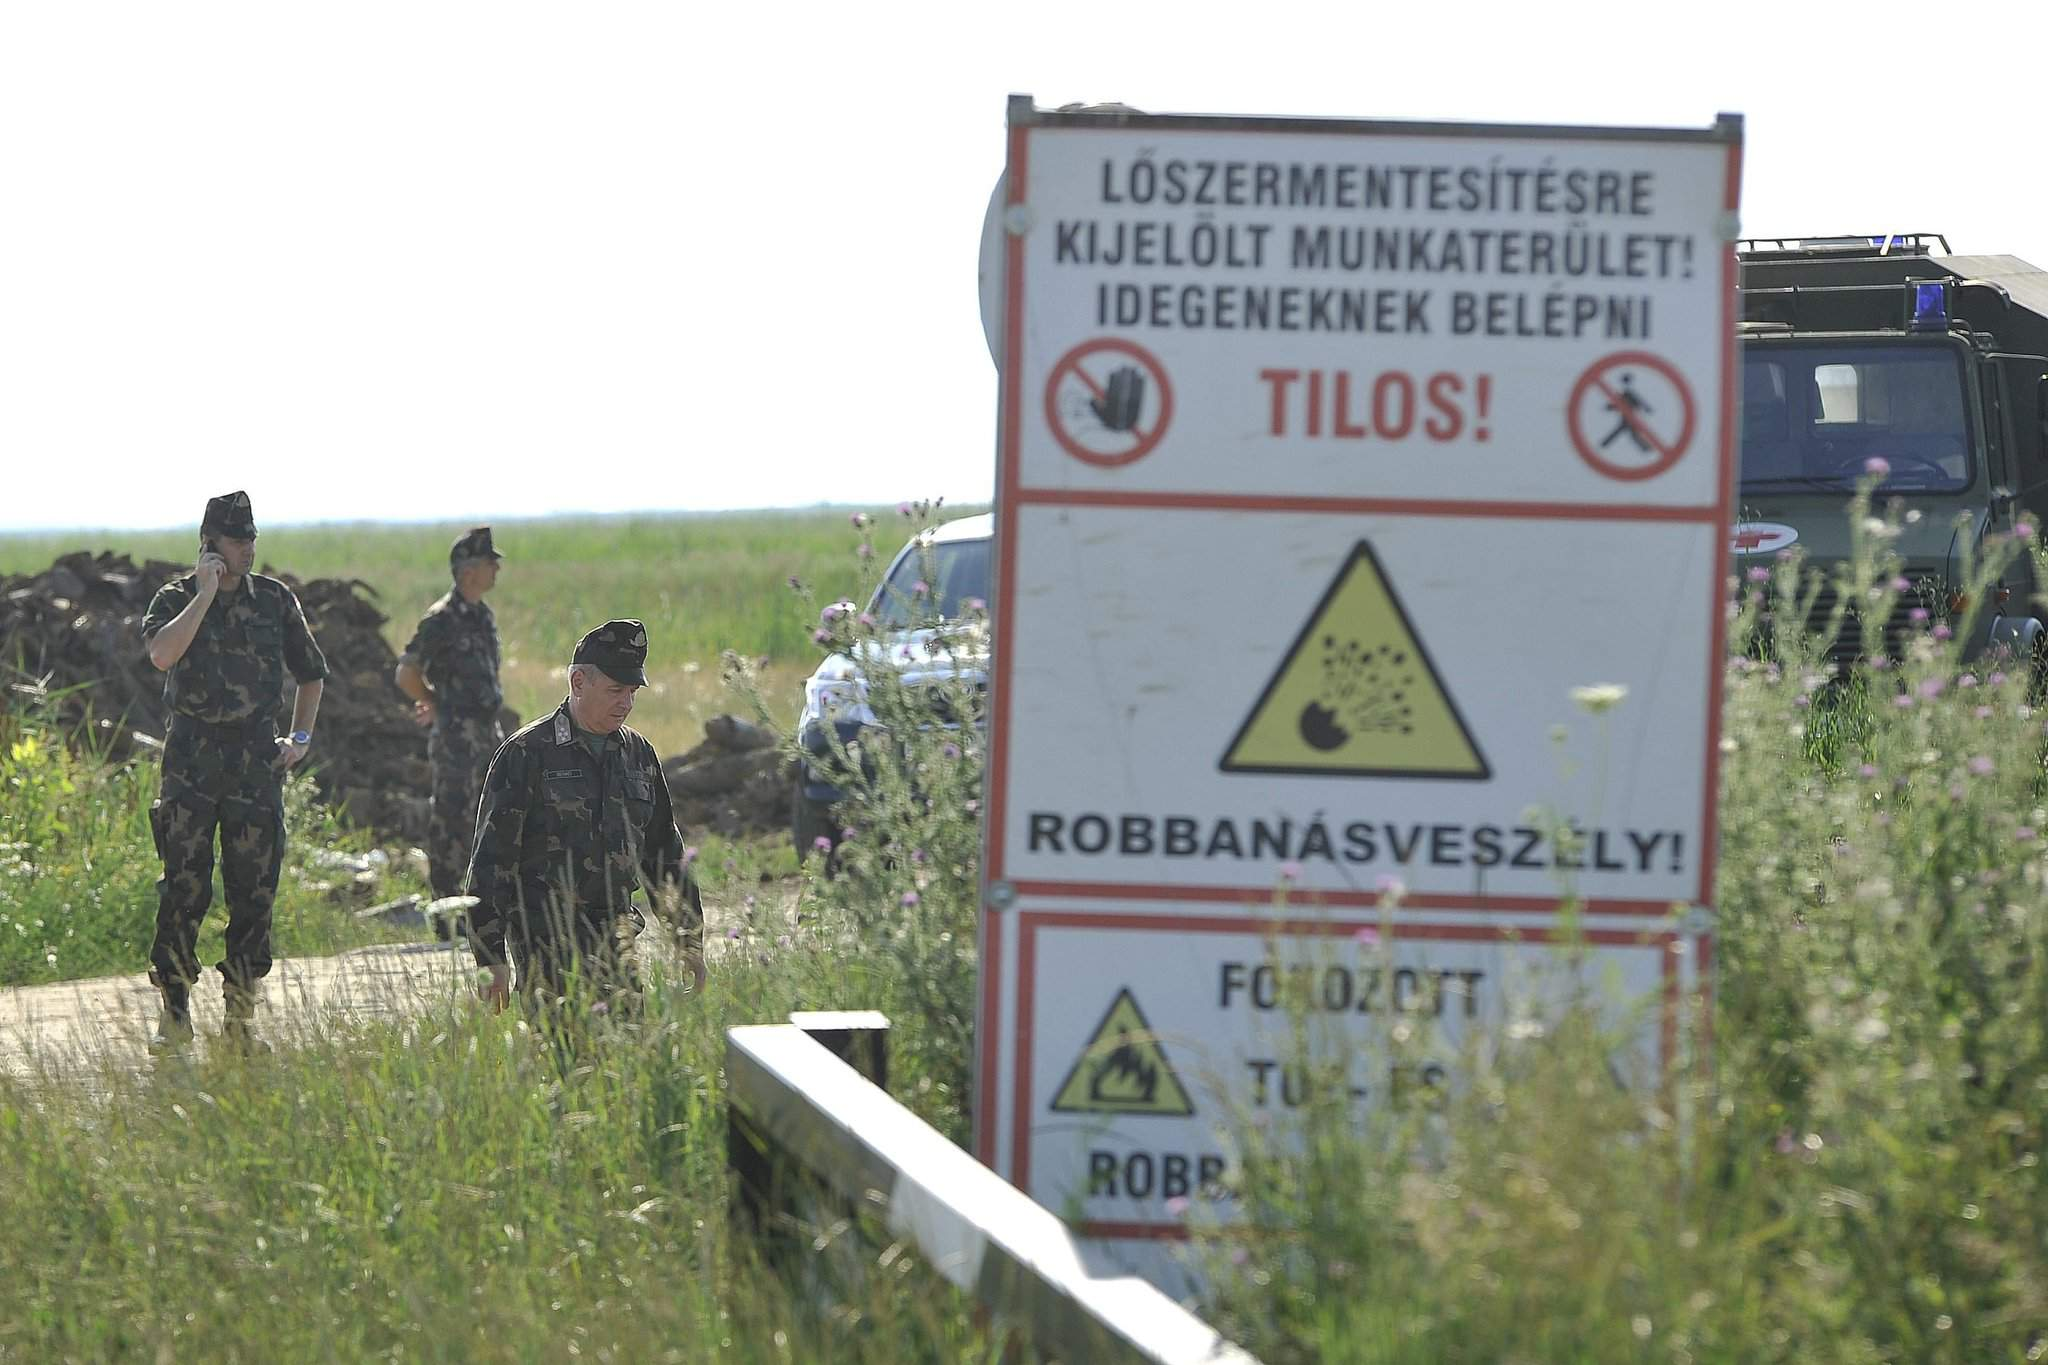 Hungarian defence minister: No human error in July post-WWII bomb explosion